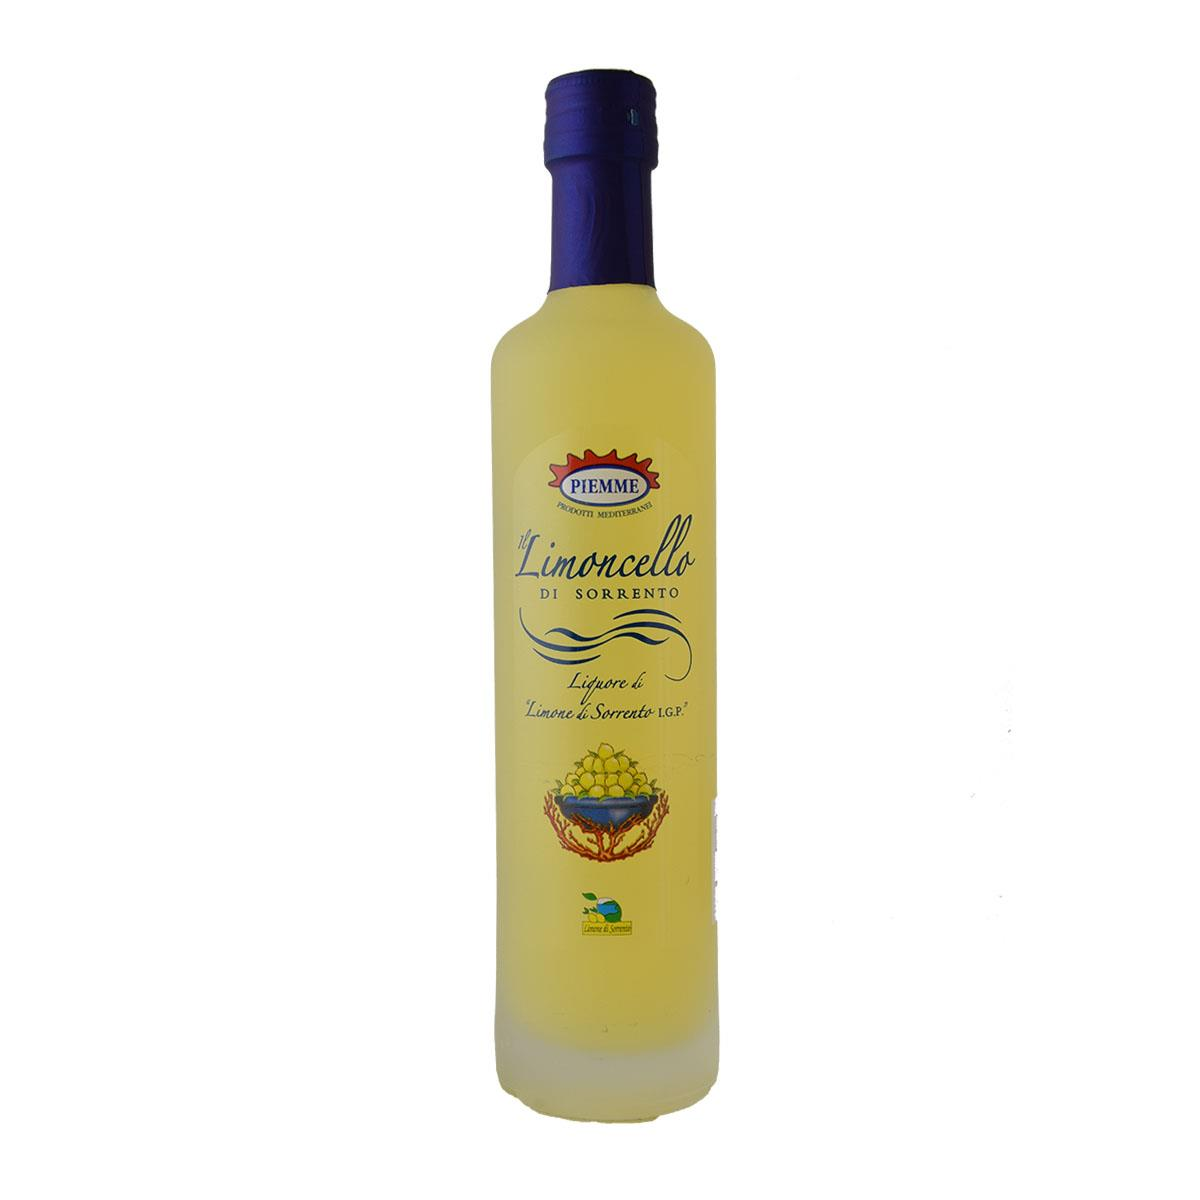 Piemme di Sorrento Limoncello 500ml